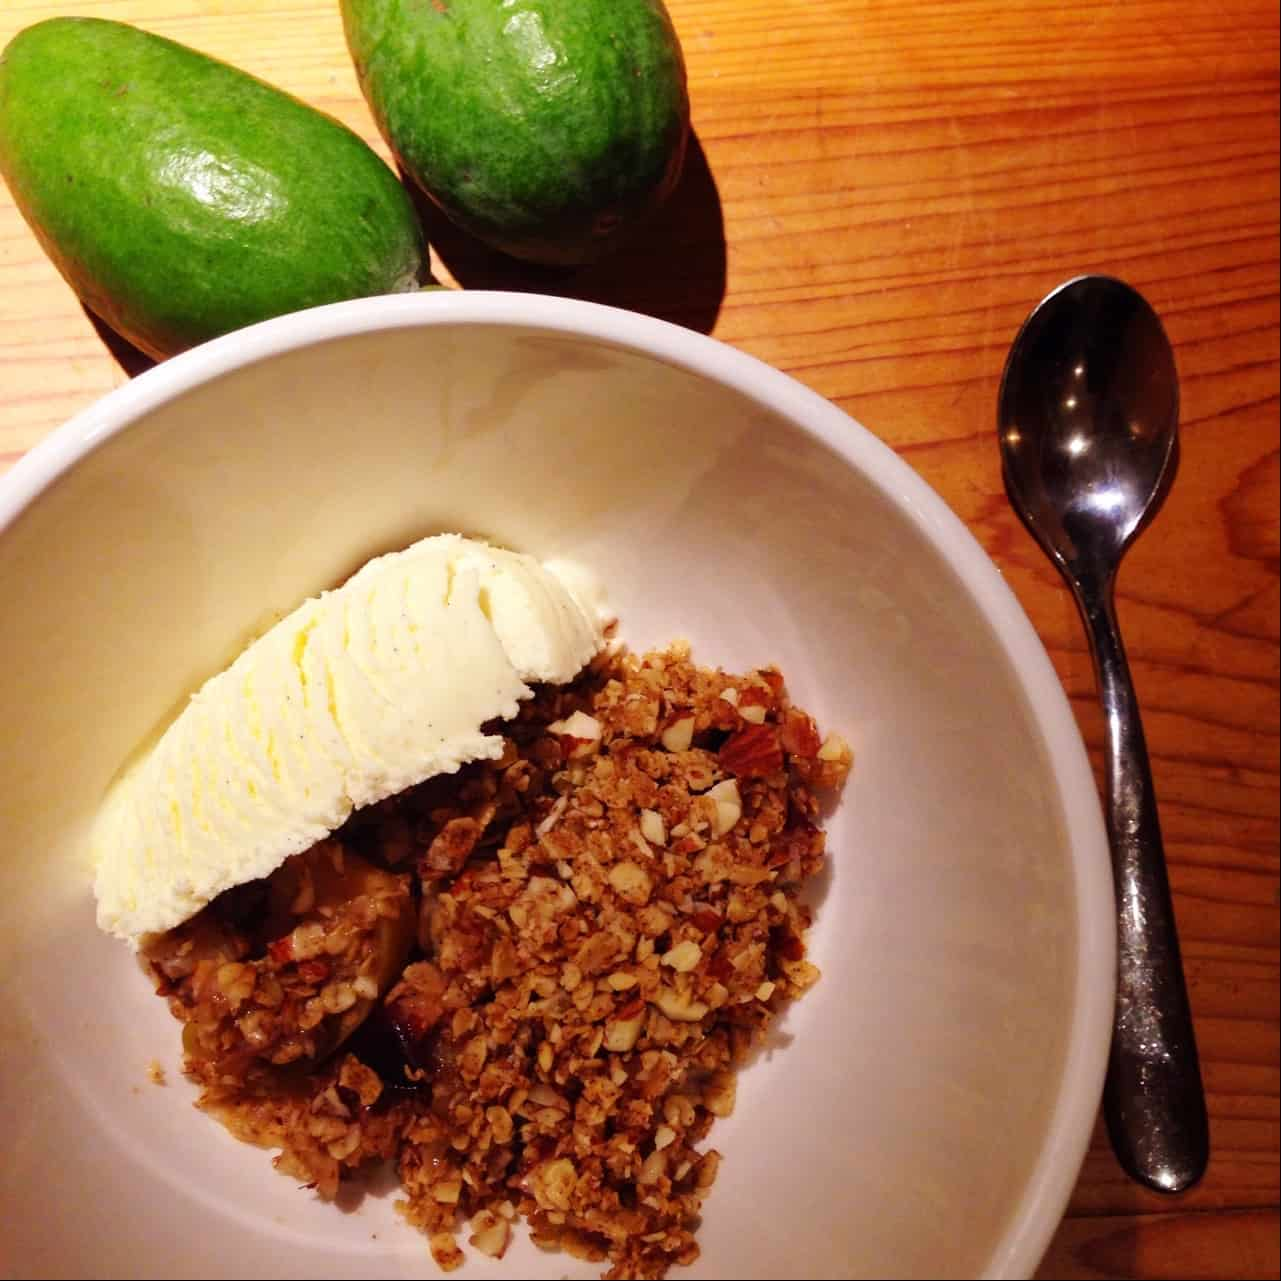 Healthy feijoa crumble - with just a tiny bit of ice cream. Yum!